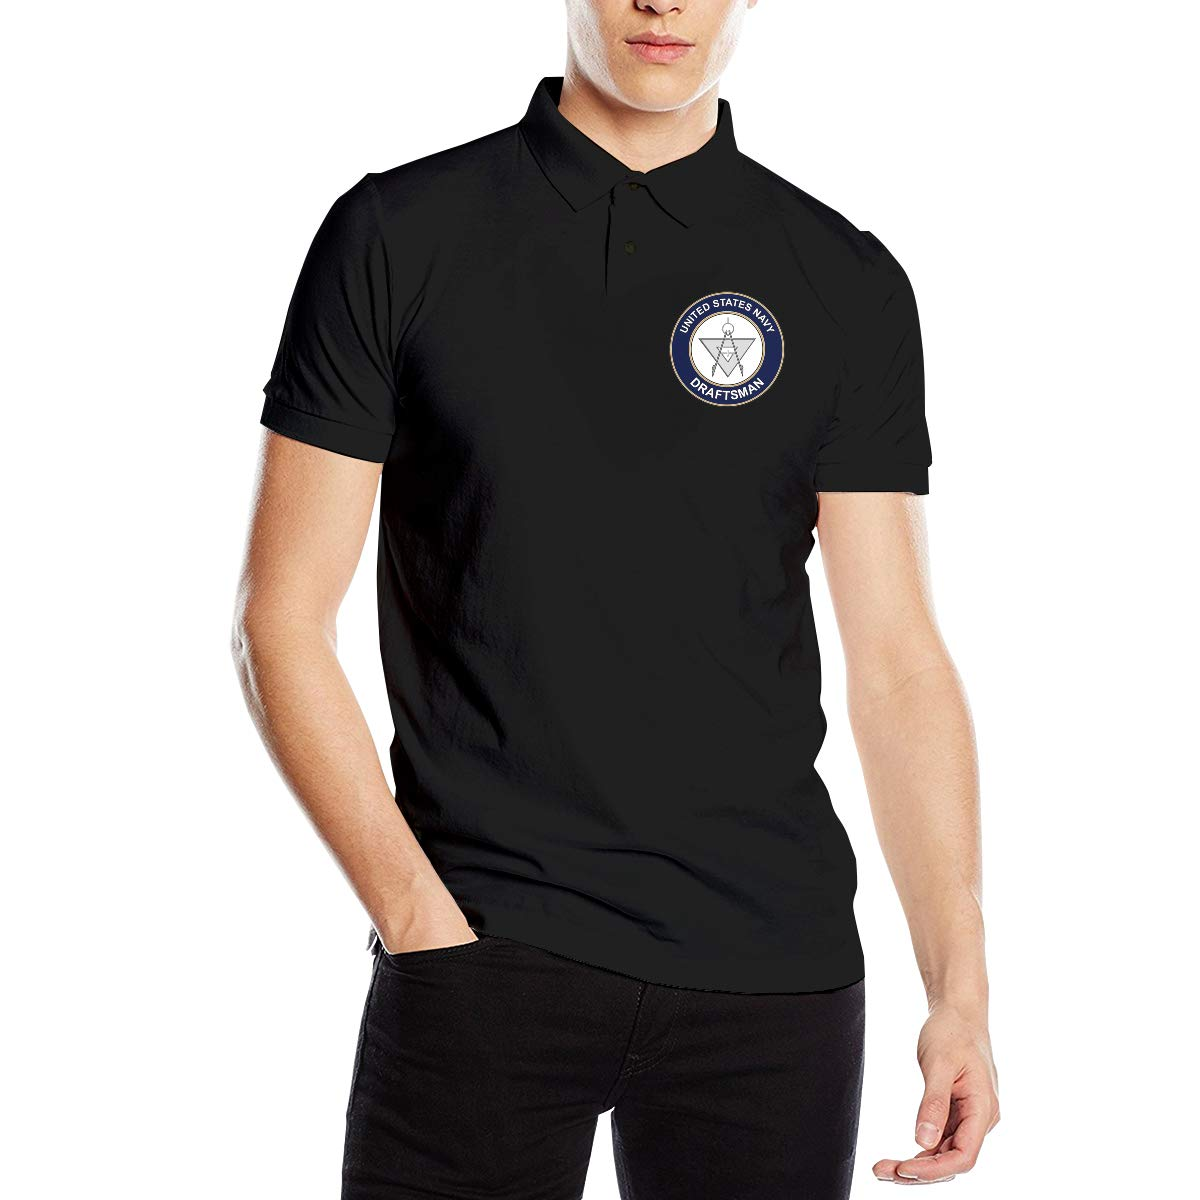 You Know And Good US Navy Draftsman DM Mens Regular-Fit Cotton Polo Shirt Short Sleeve